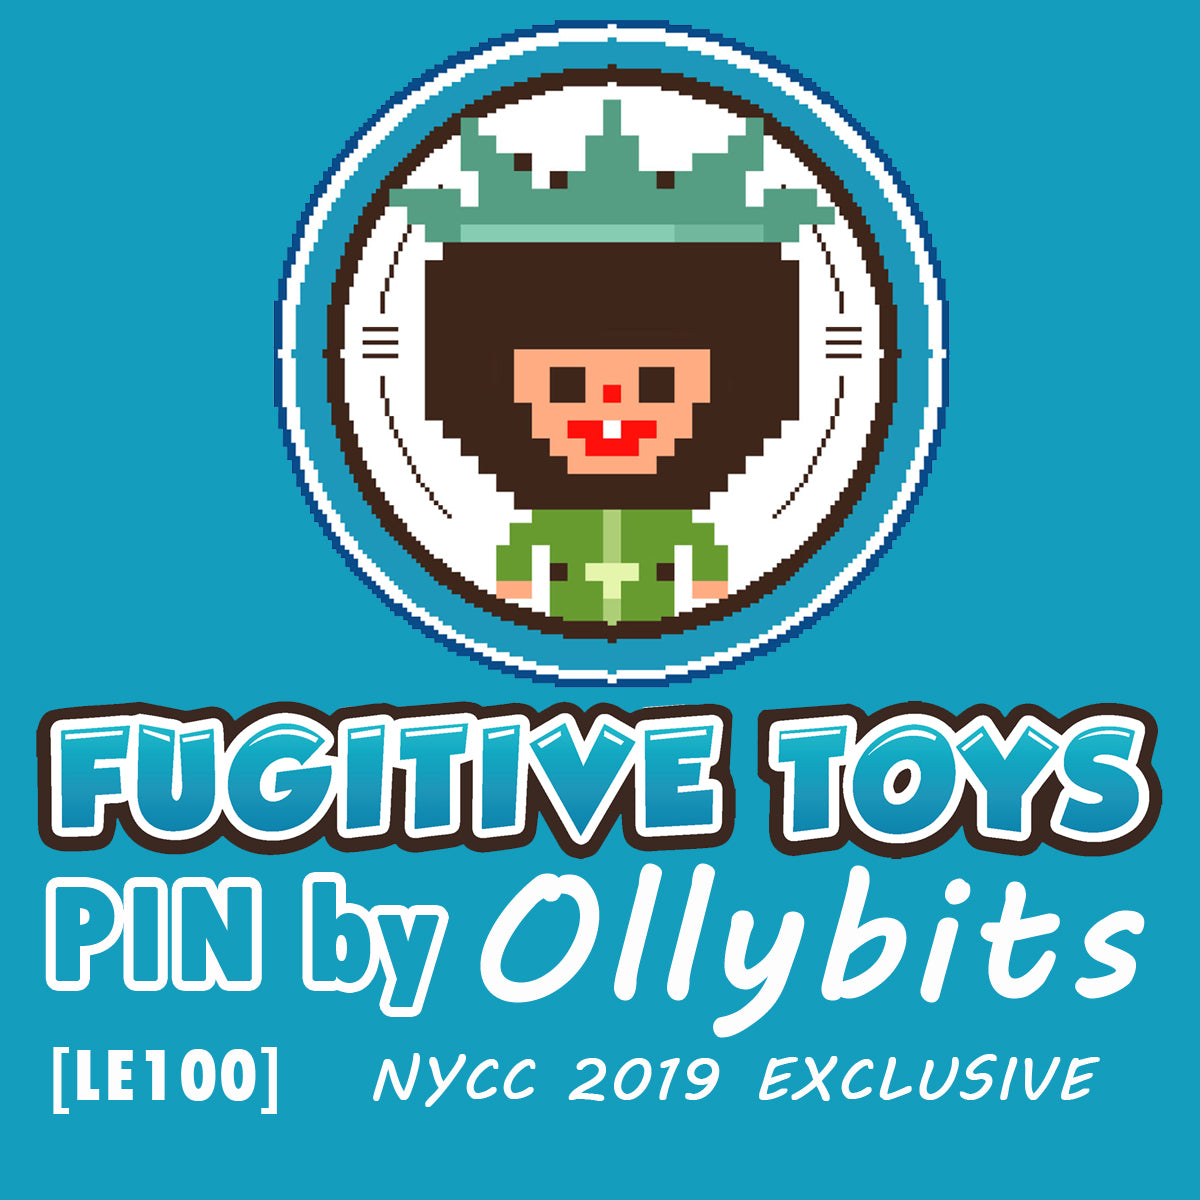 8 Bit Fugitive Toys Pin by Ollybits [2019 NYCC Exclusive] - Fugitive Toys